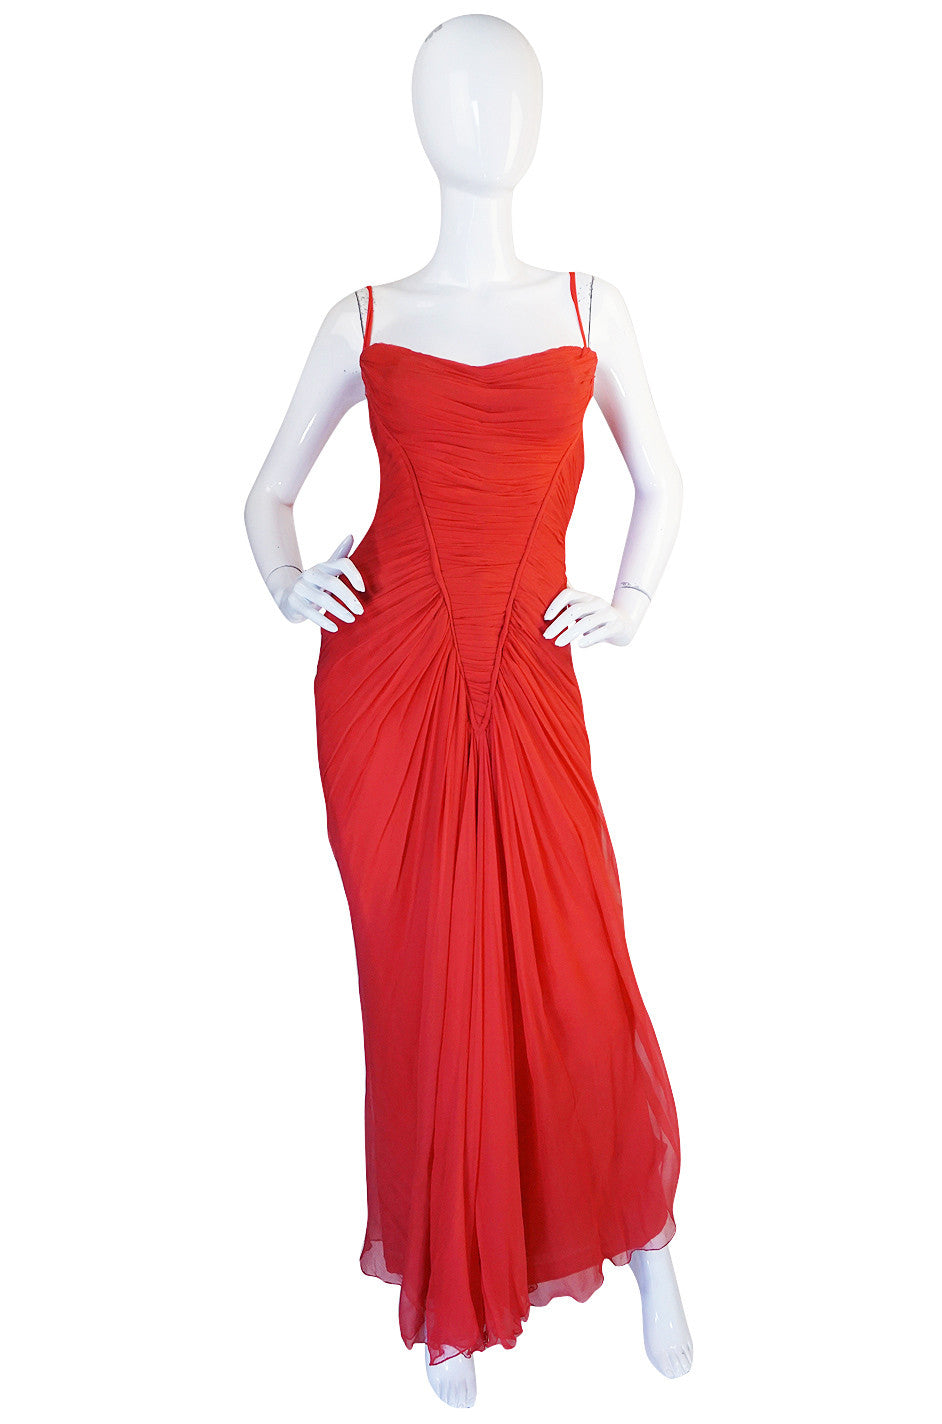 2d27f433fc1 c1959 Haute Couture Maggy Rouff Red Draped Gown